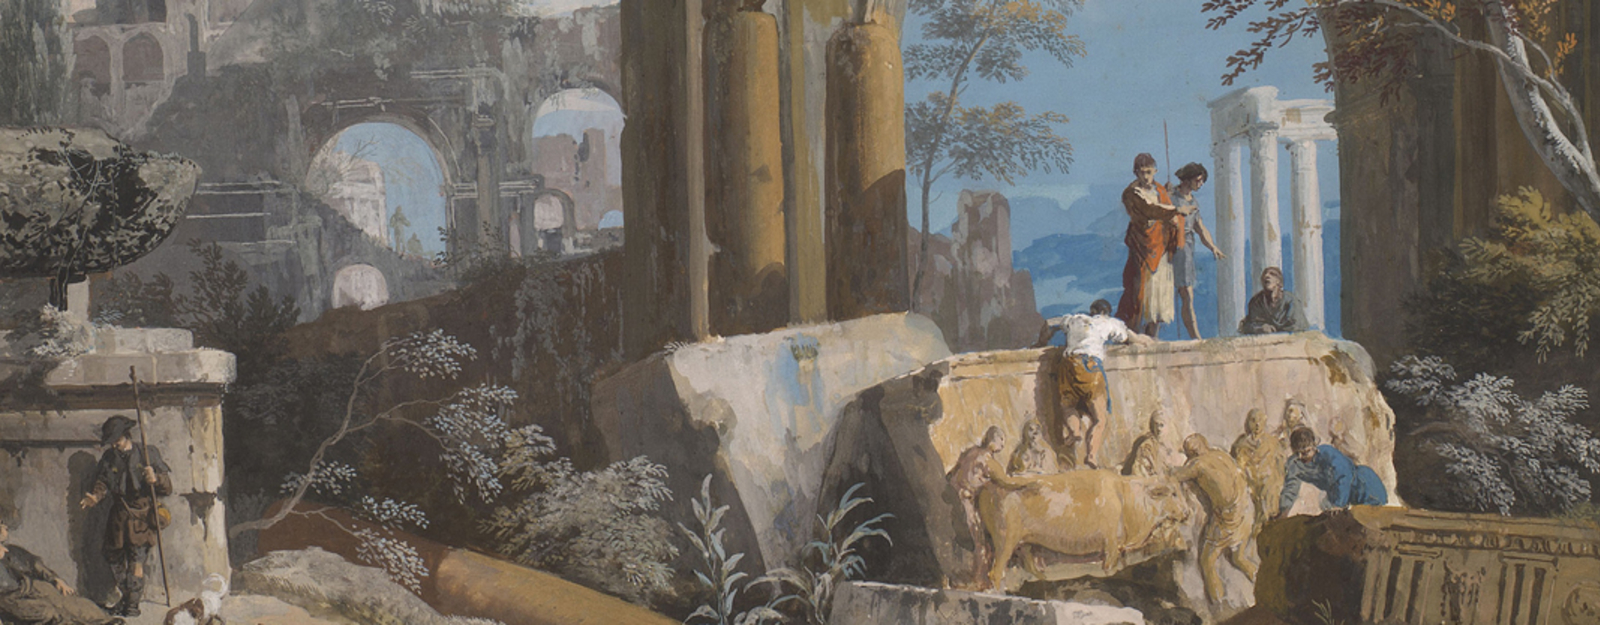 A painting by Marco Ricci - A Ruin Caprice with Roman Motifs